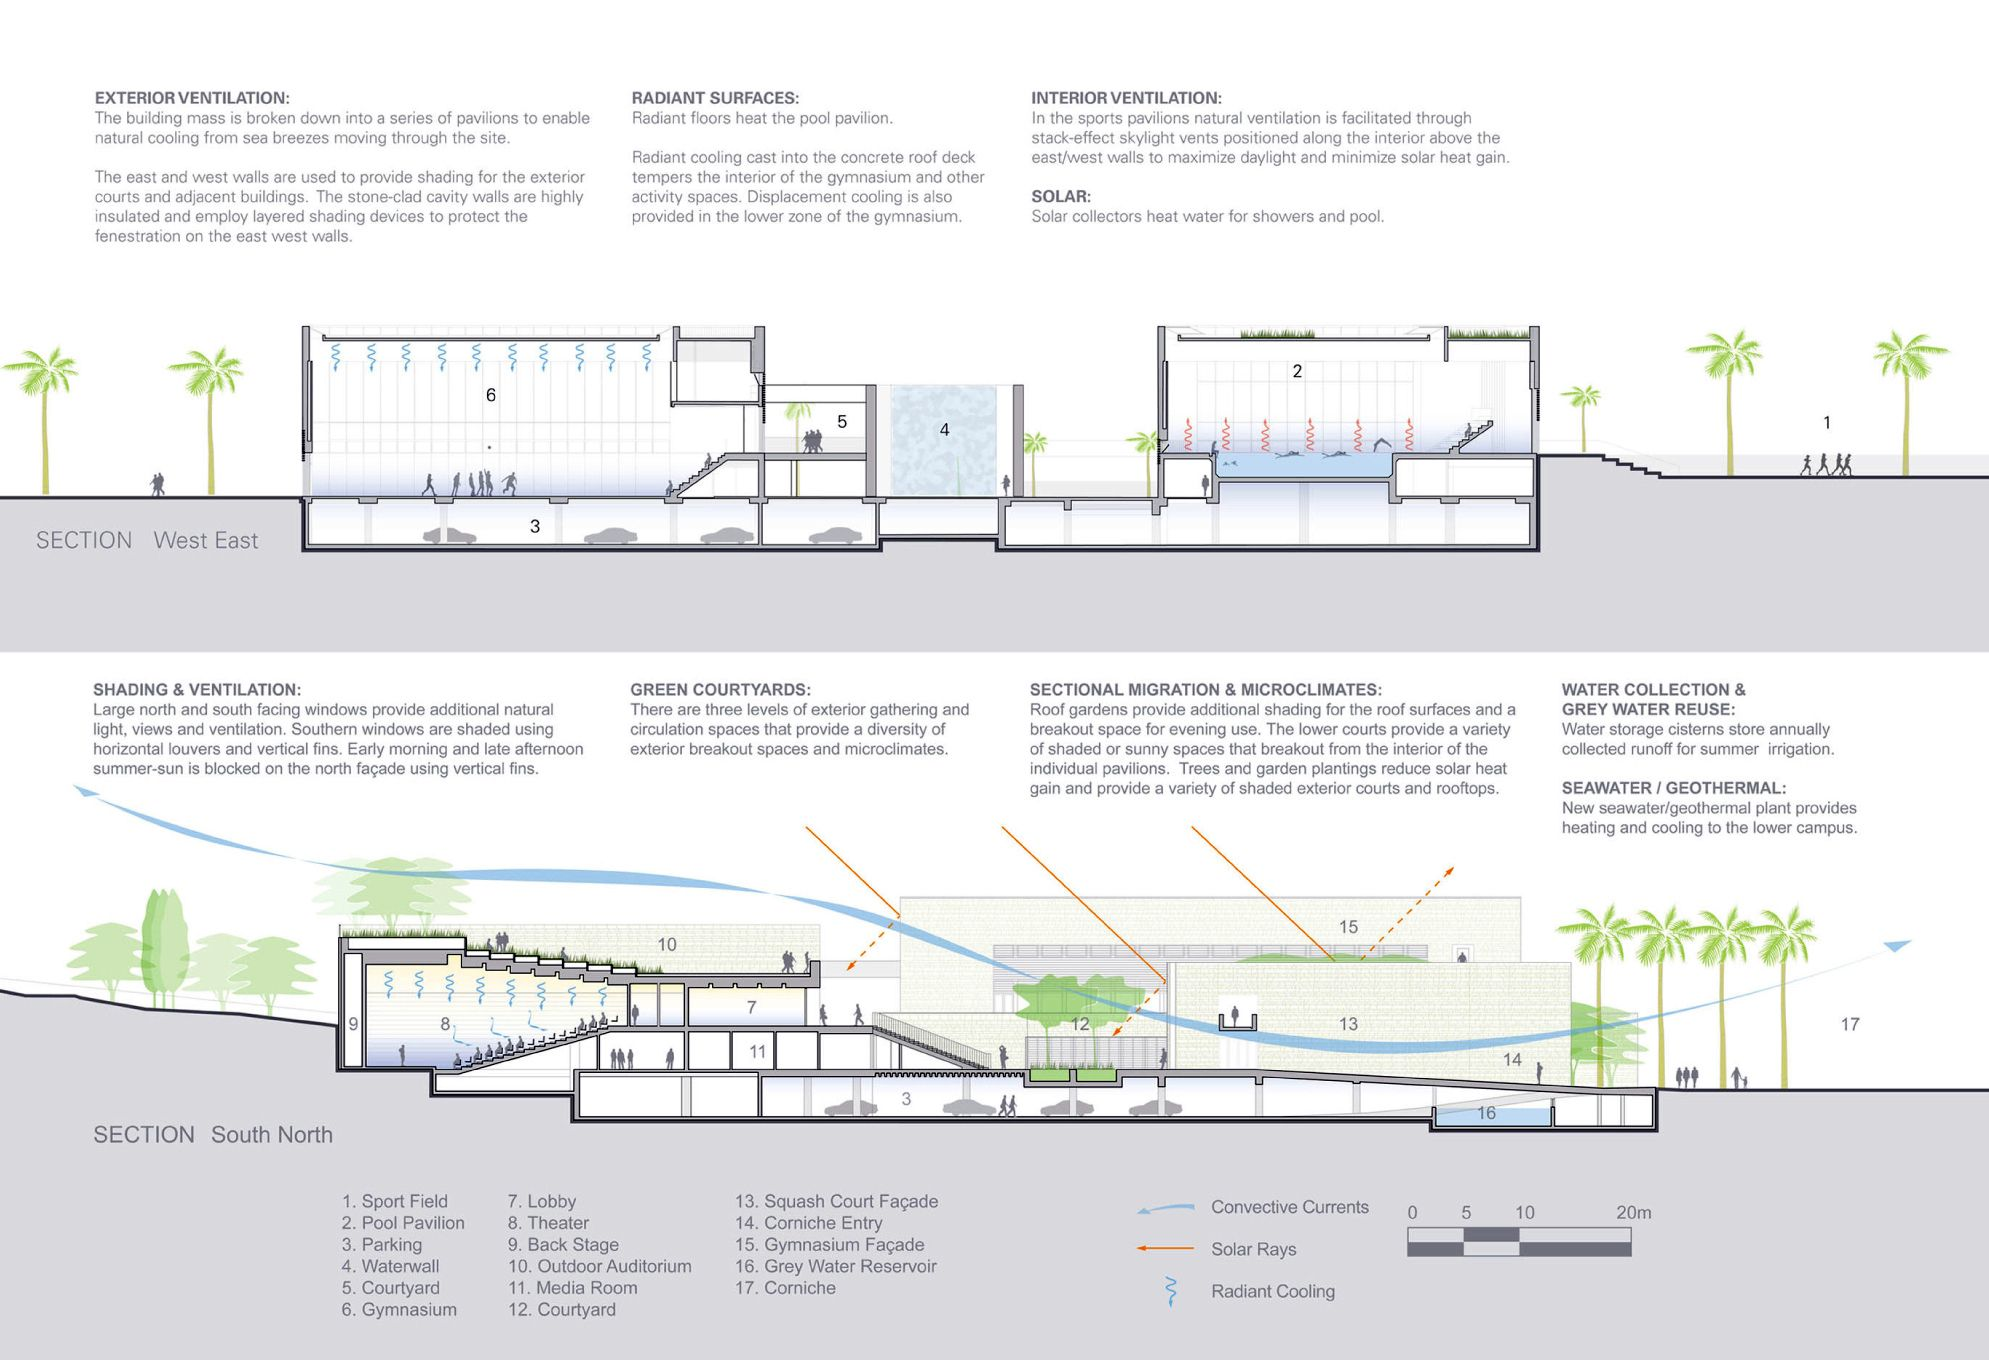 Environmental Design Research The Body The City And The Buildings